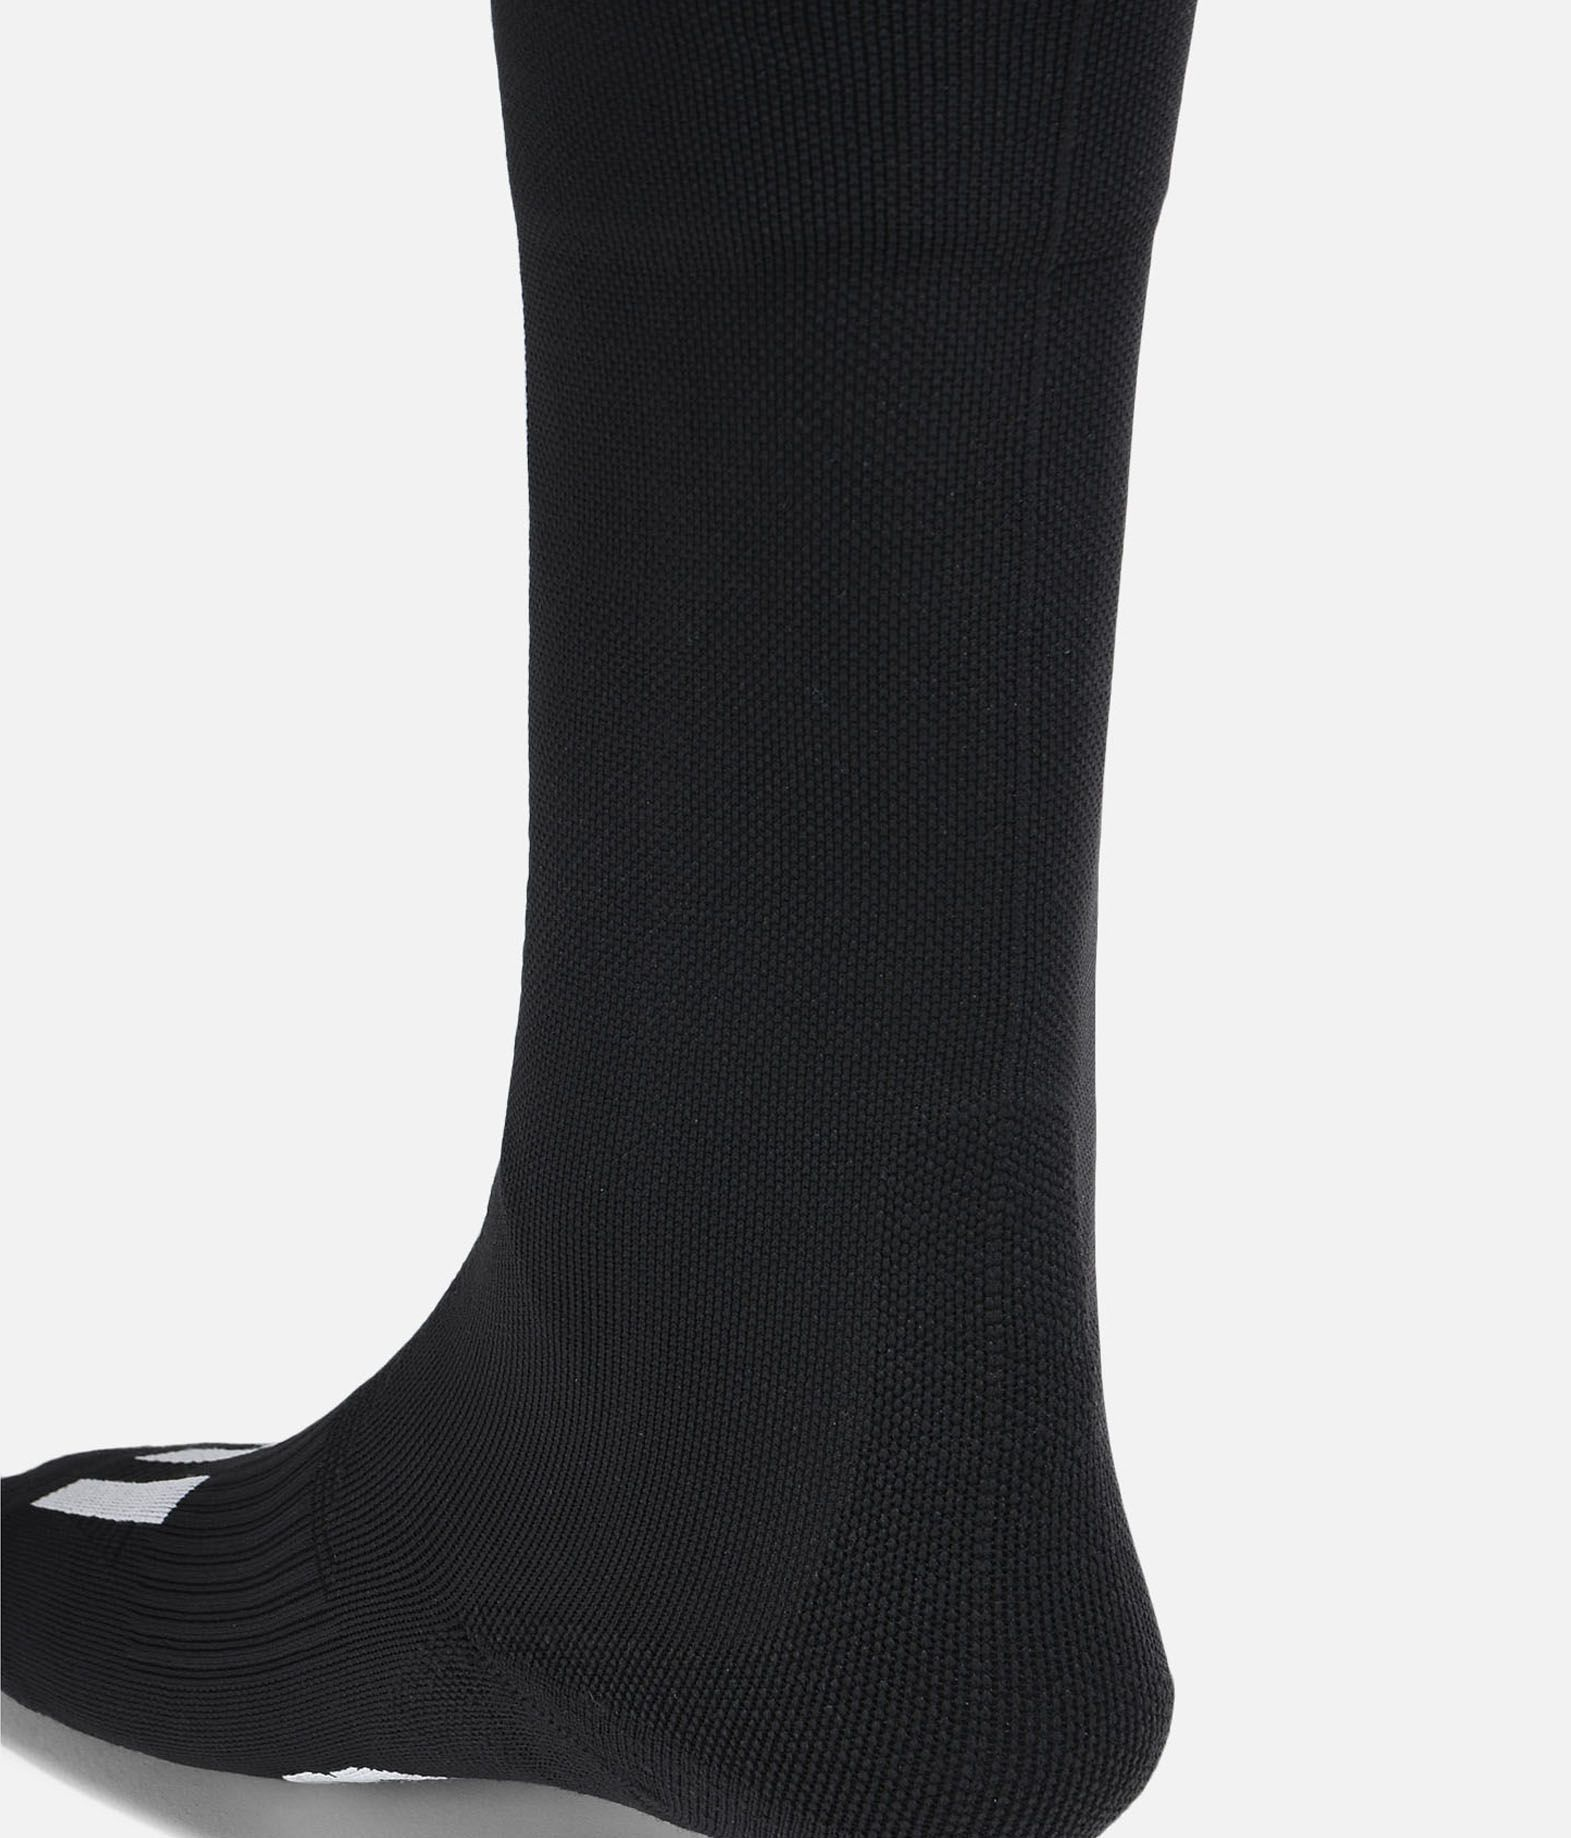 Y-3 Y-3 Tech Socks Socken E d